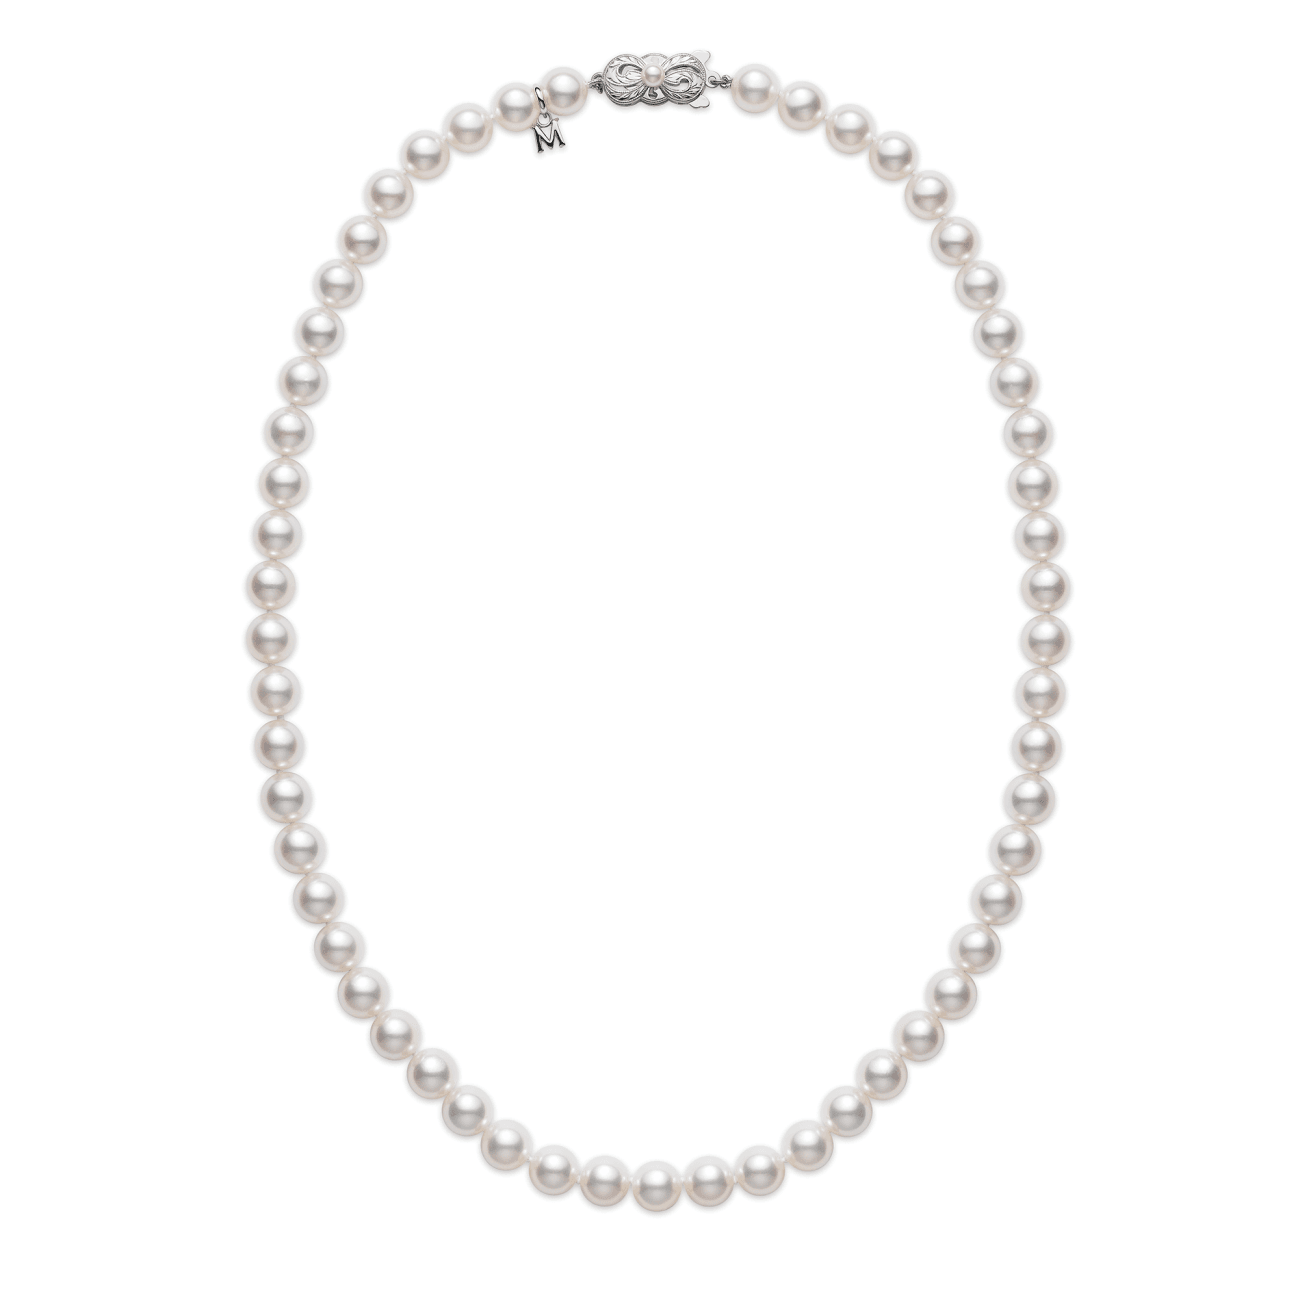 Mikimoto Jewelry - 18k White Gold 7.0 mm Cultured Pearl Necklace | Manfredi Jewels